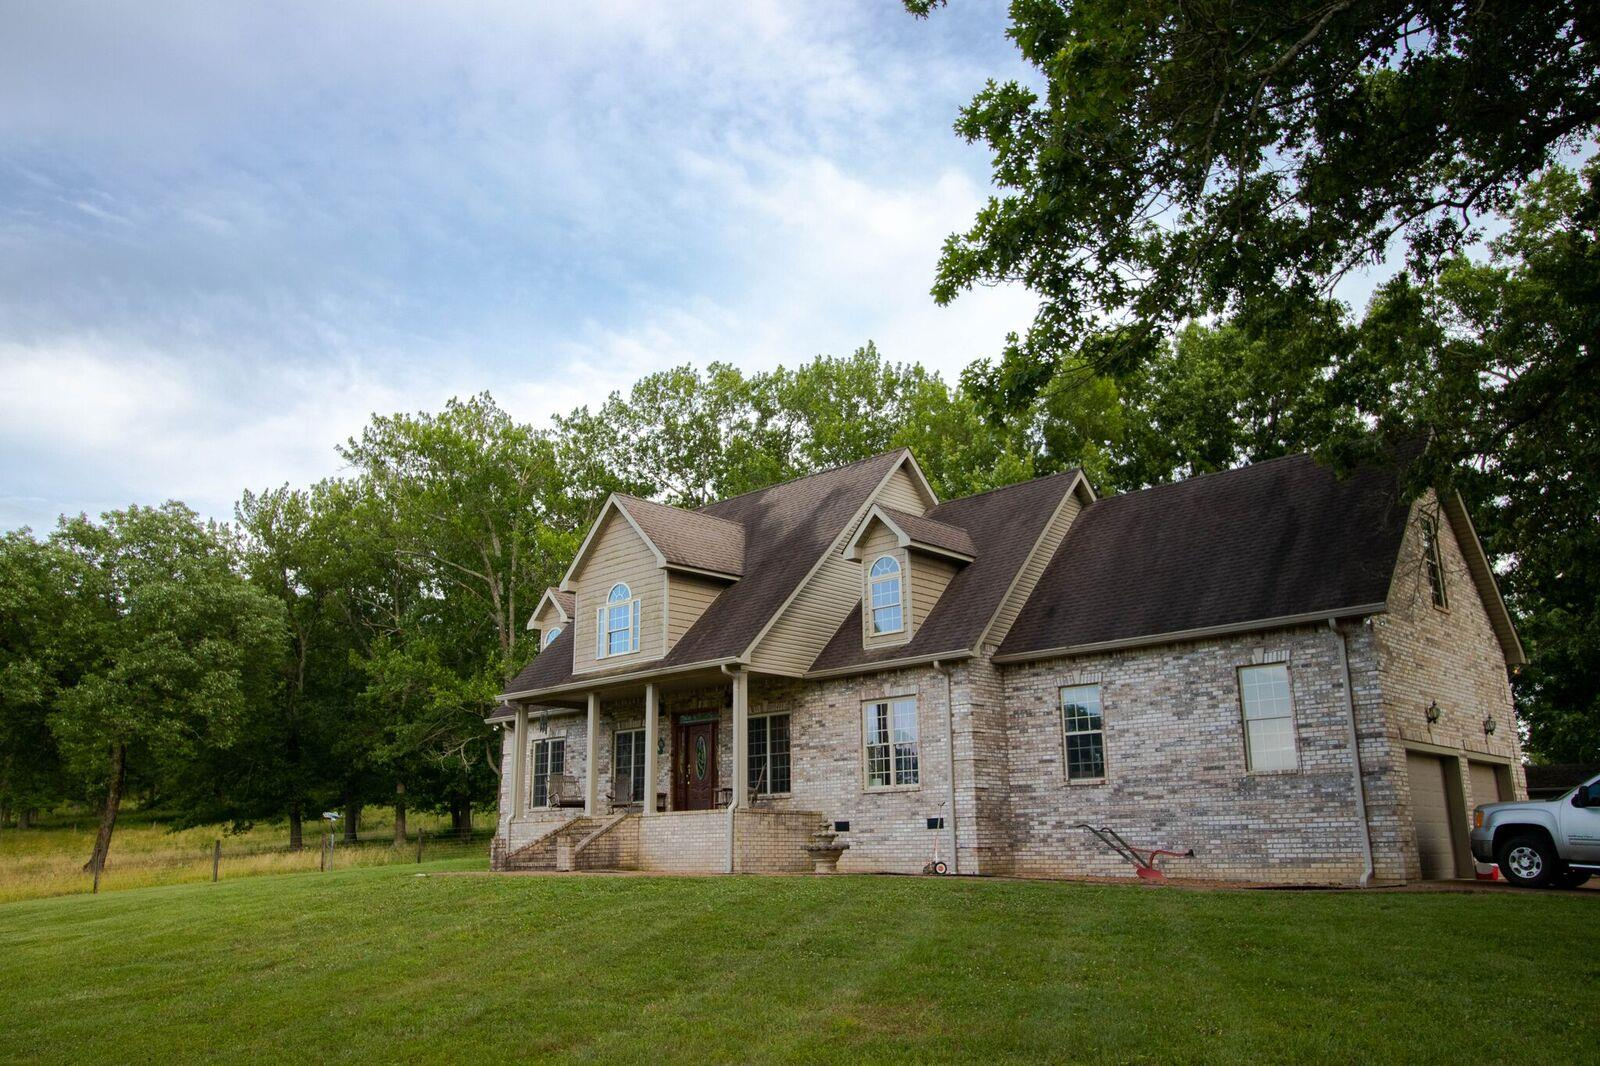 140 Russell Rd, Shelbyville, TN 37160 - Shelbyville, TN real estate listing